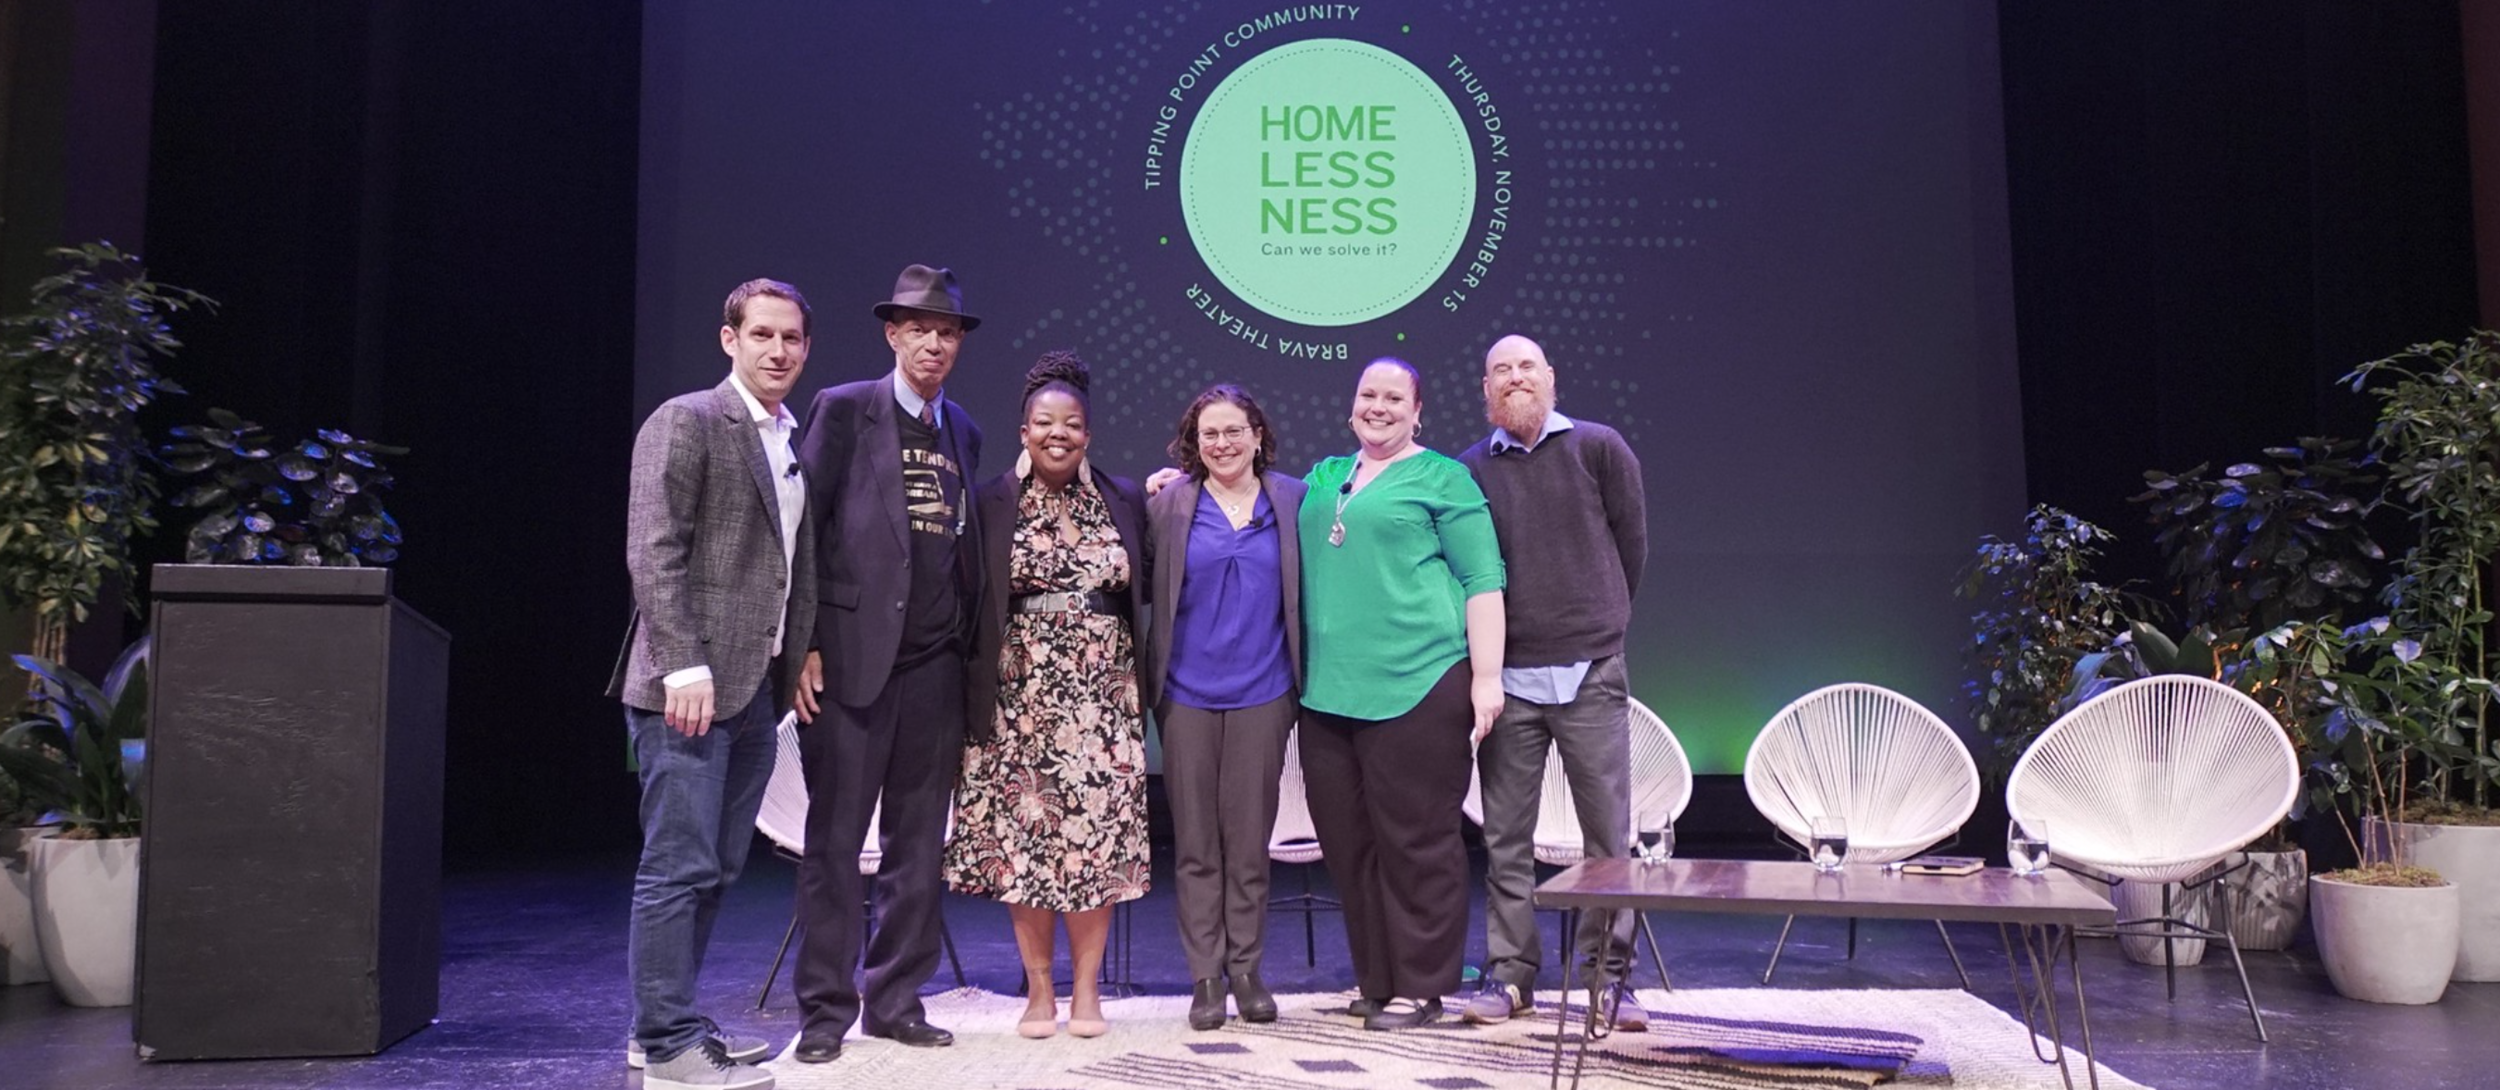 Daniel Lurie, CEO + Founder of Tipping Point; Del Seymour, Founder of Code Tenderloin; Tomiquia Moss, CEO of Hamilton Families; Dr. Margot Kushel, Director of UCSF Center for Vulnerable Populations; Amber Twitchell, Associate Director of On the Move; and Brian Blalock, Director of Law + Policy at Tipping Point